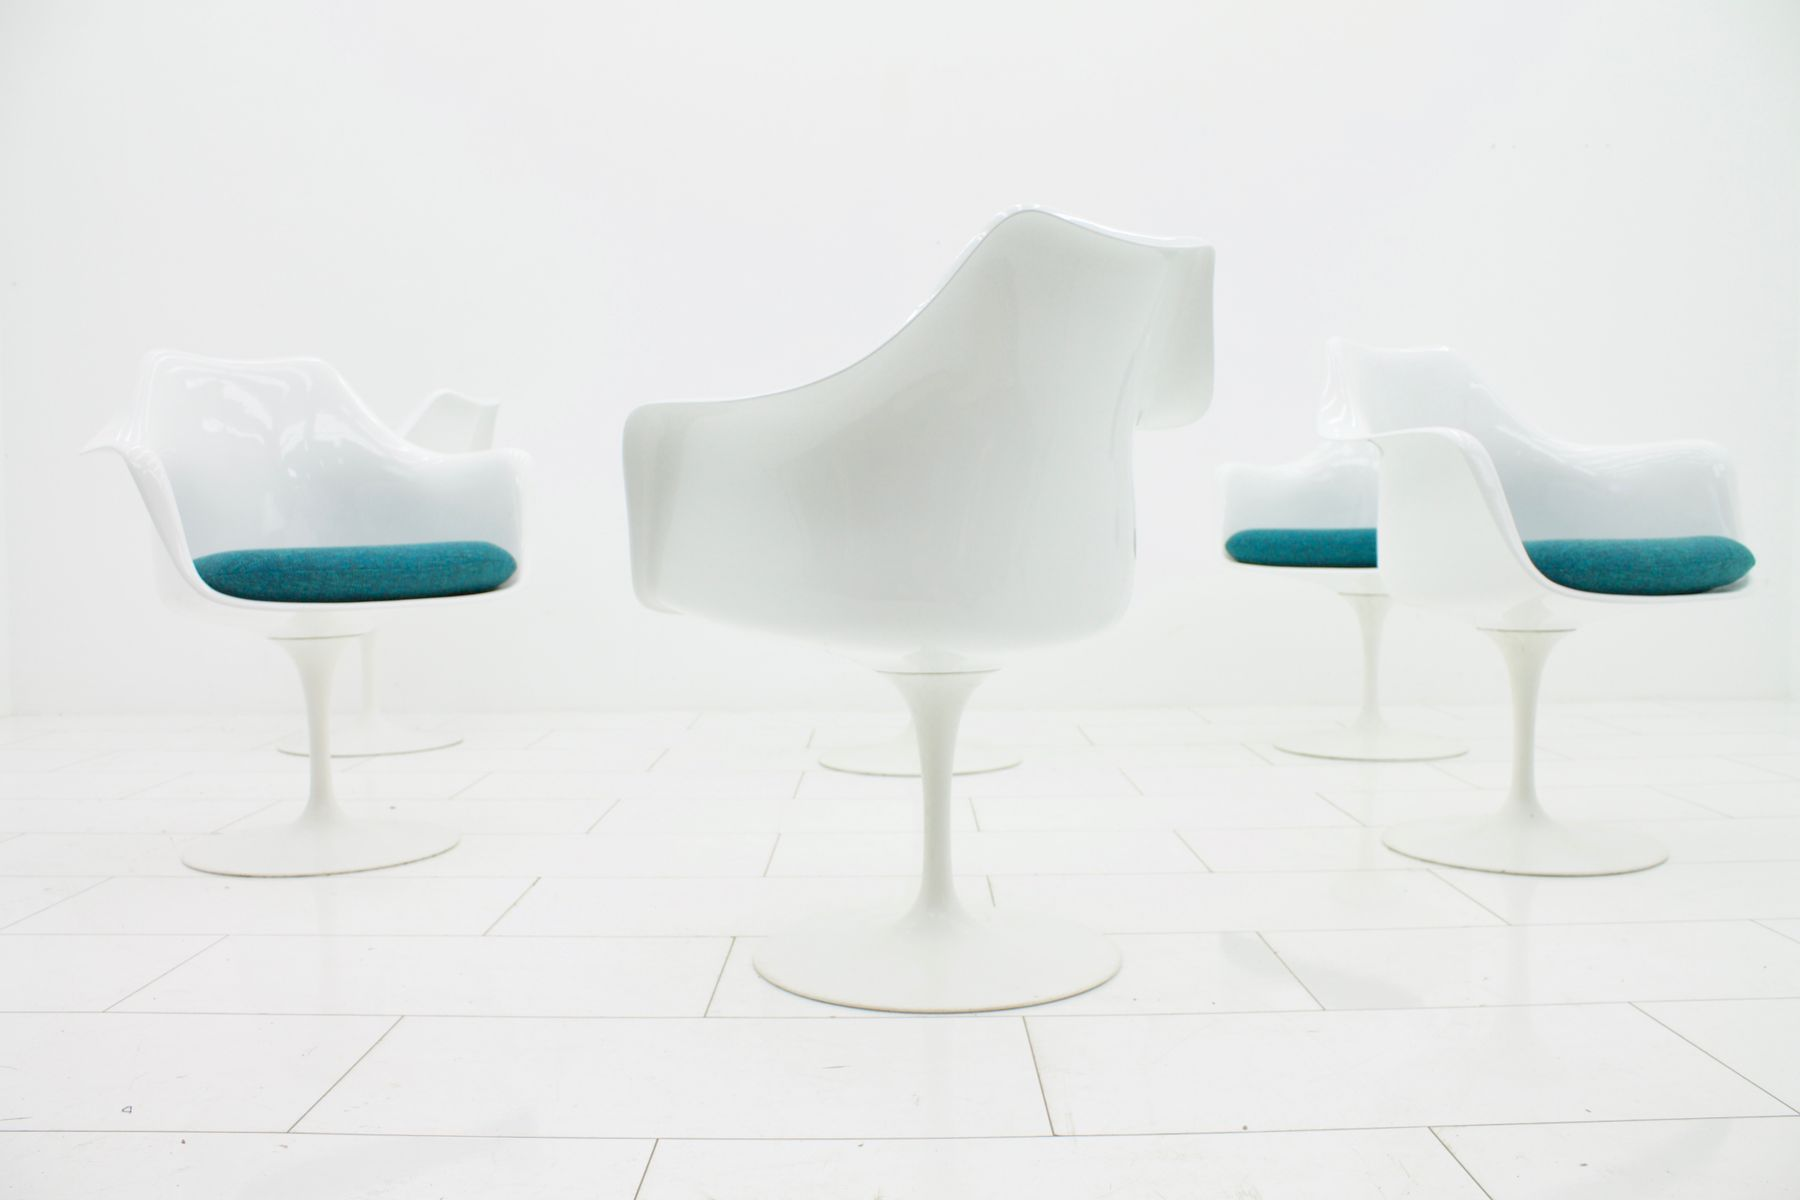 White Swivel Chairs by Eero Saarinen for Knoll 1970s Set of 6